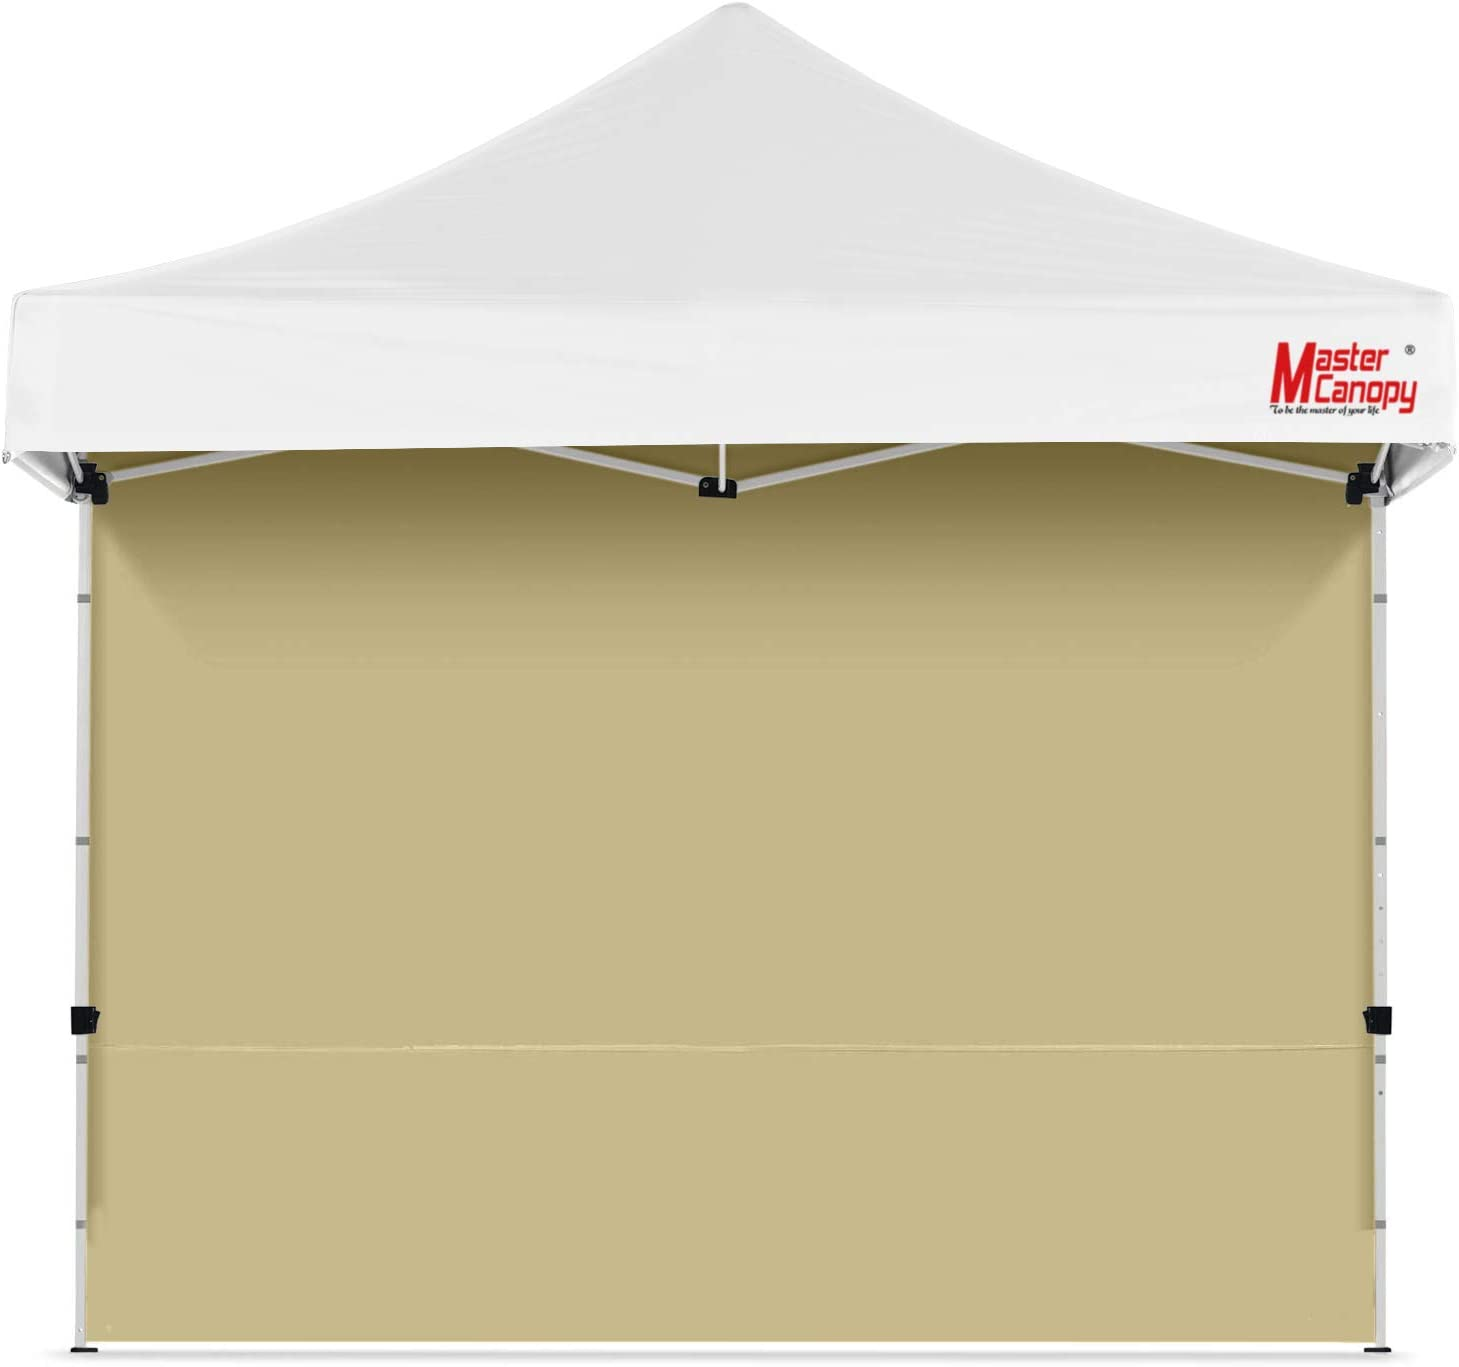 Removable Zipper End Eurmax Instant SunWall for 10x10 Pop up Canopy Beige 1 Pack Sidewall Only Outdoor Instant Canopies